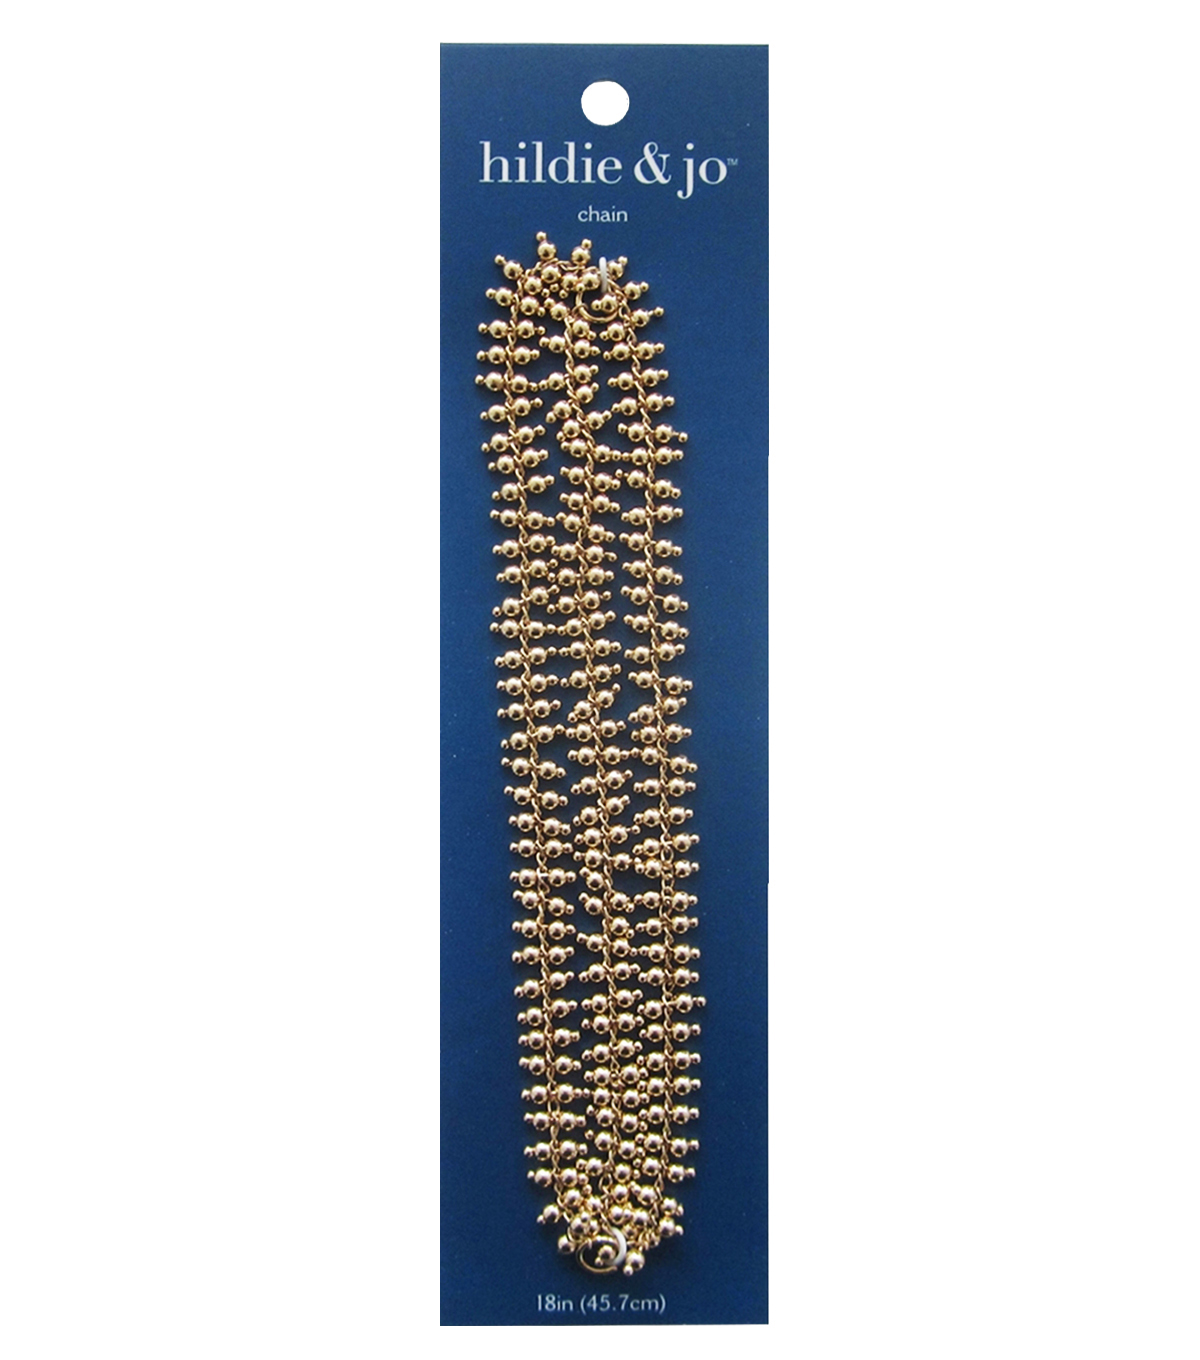 hildie & jo 18\u0027\u0027 Metal Ball Chain-Gold